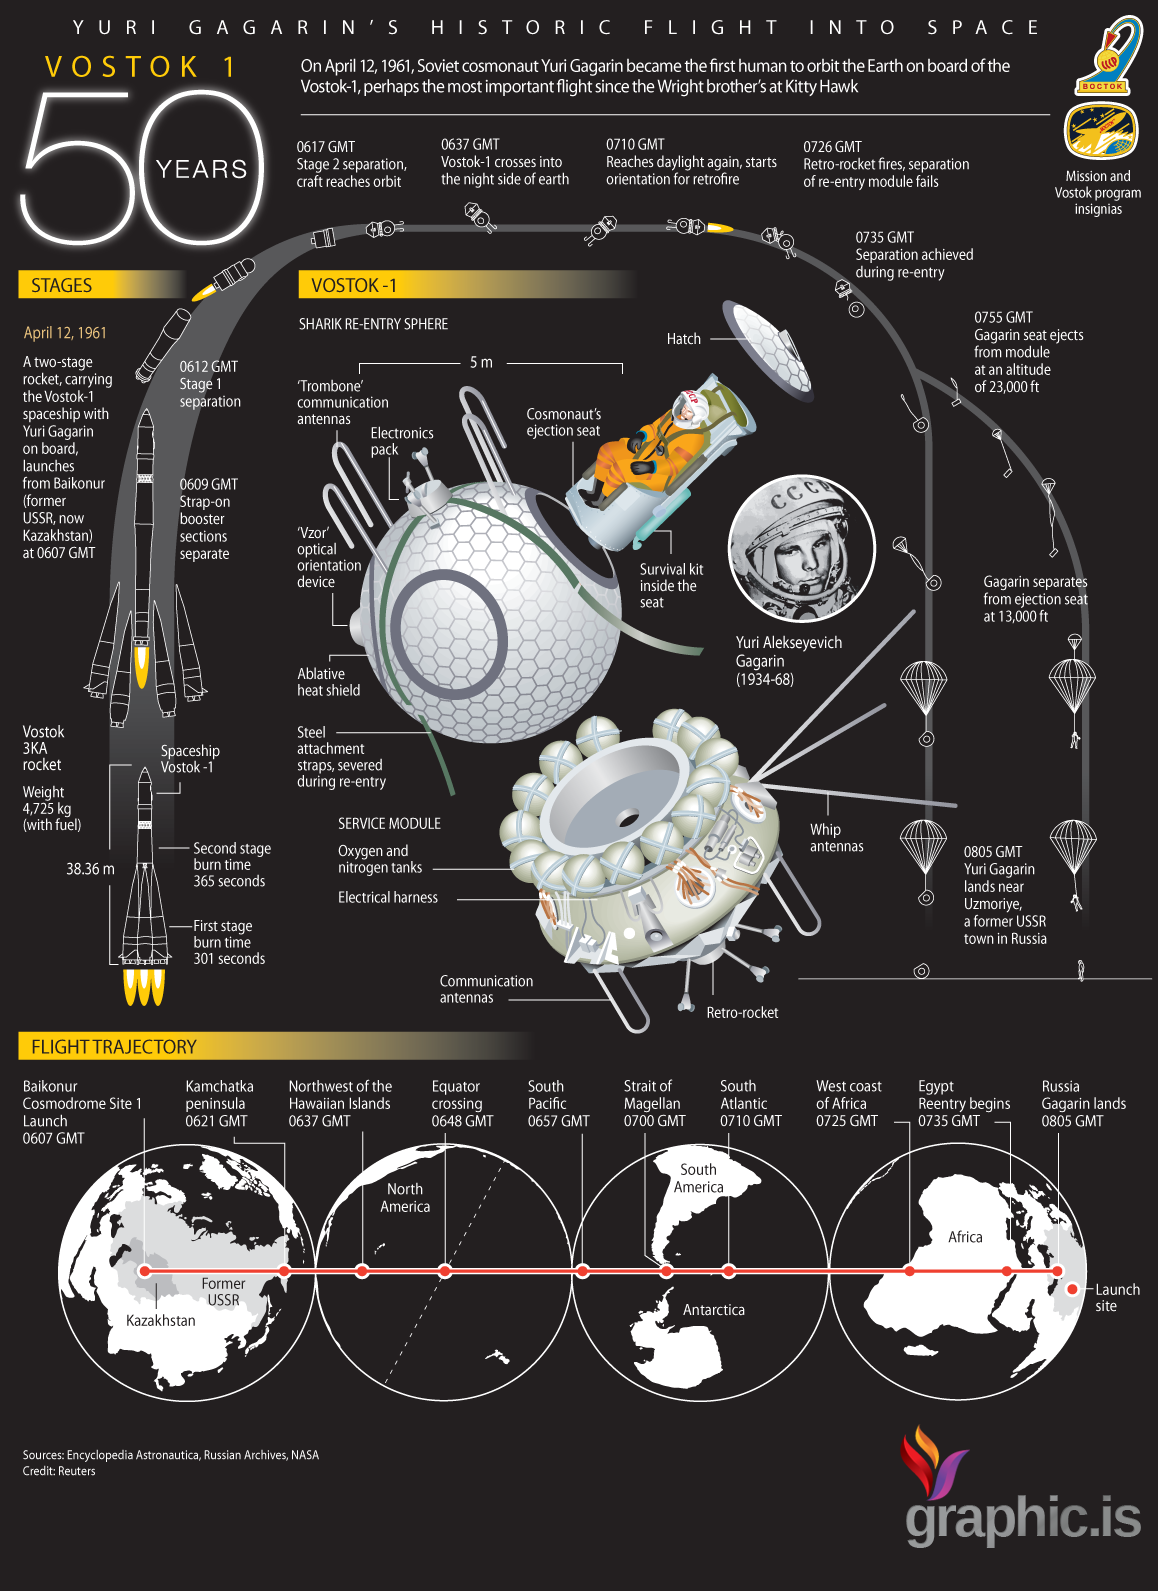 Vostok 1 (Russian: Восток-1, East 1 or Arrange 1) was the first spaceflight in the Vostok system and the first human spaceflight in history. The Vostok 3KA space apparatus was […]